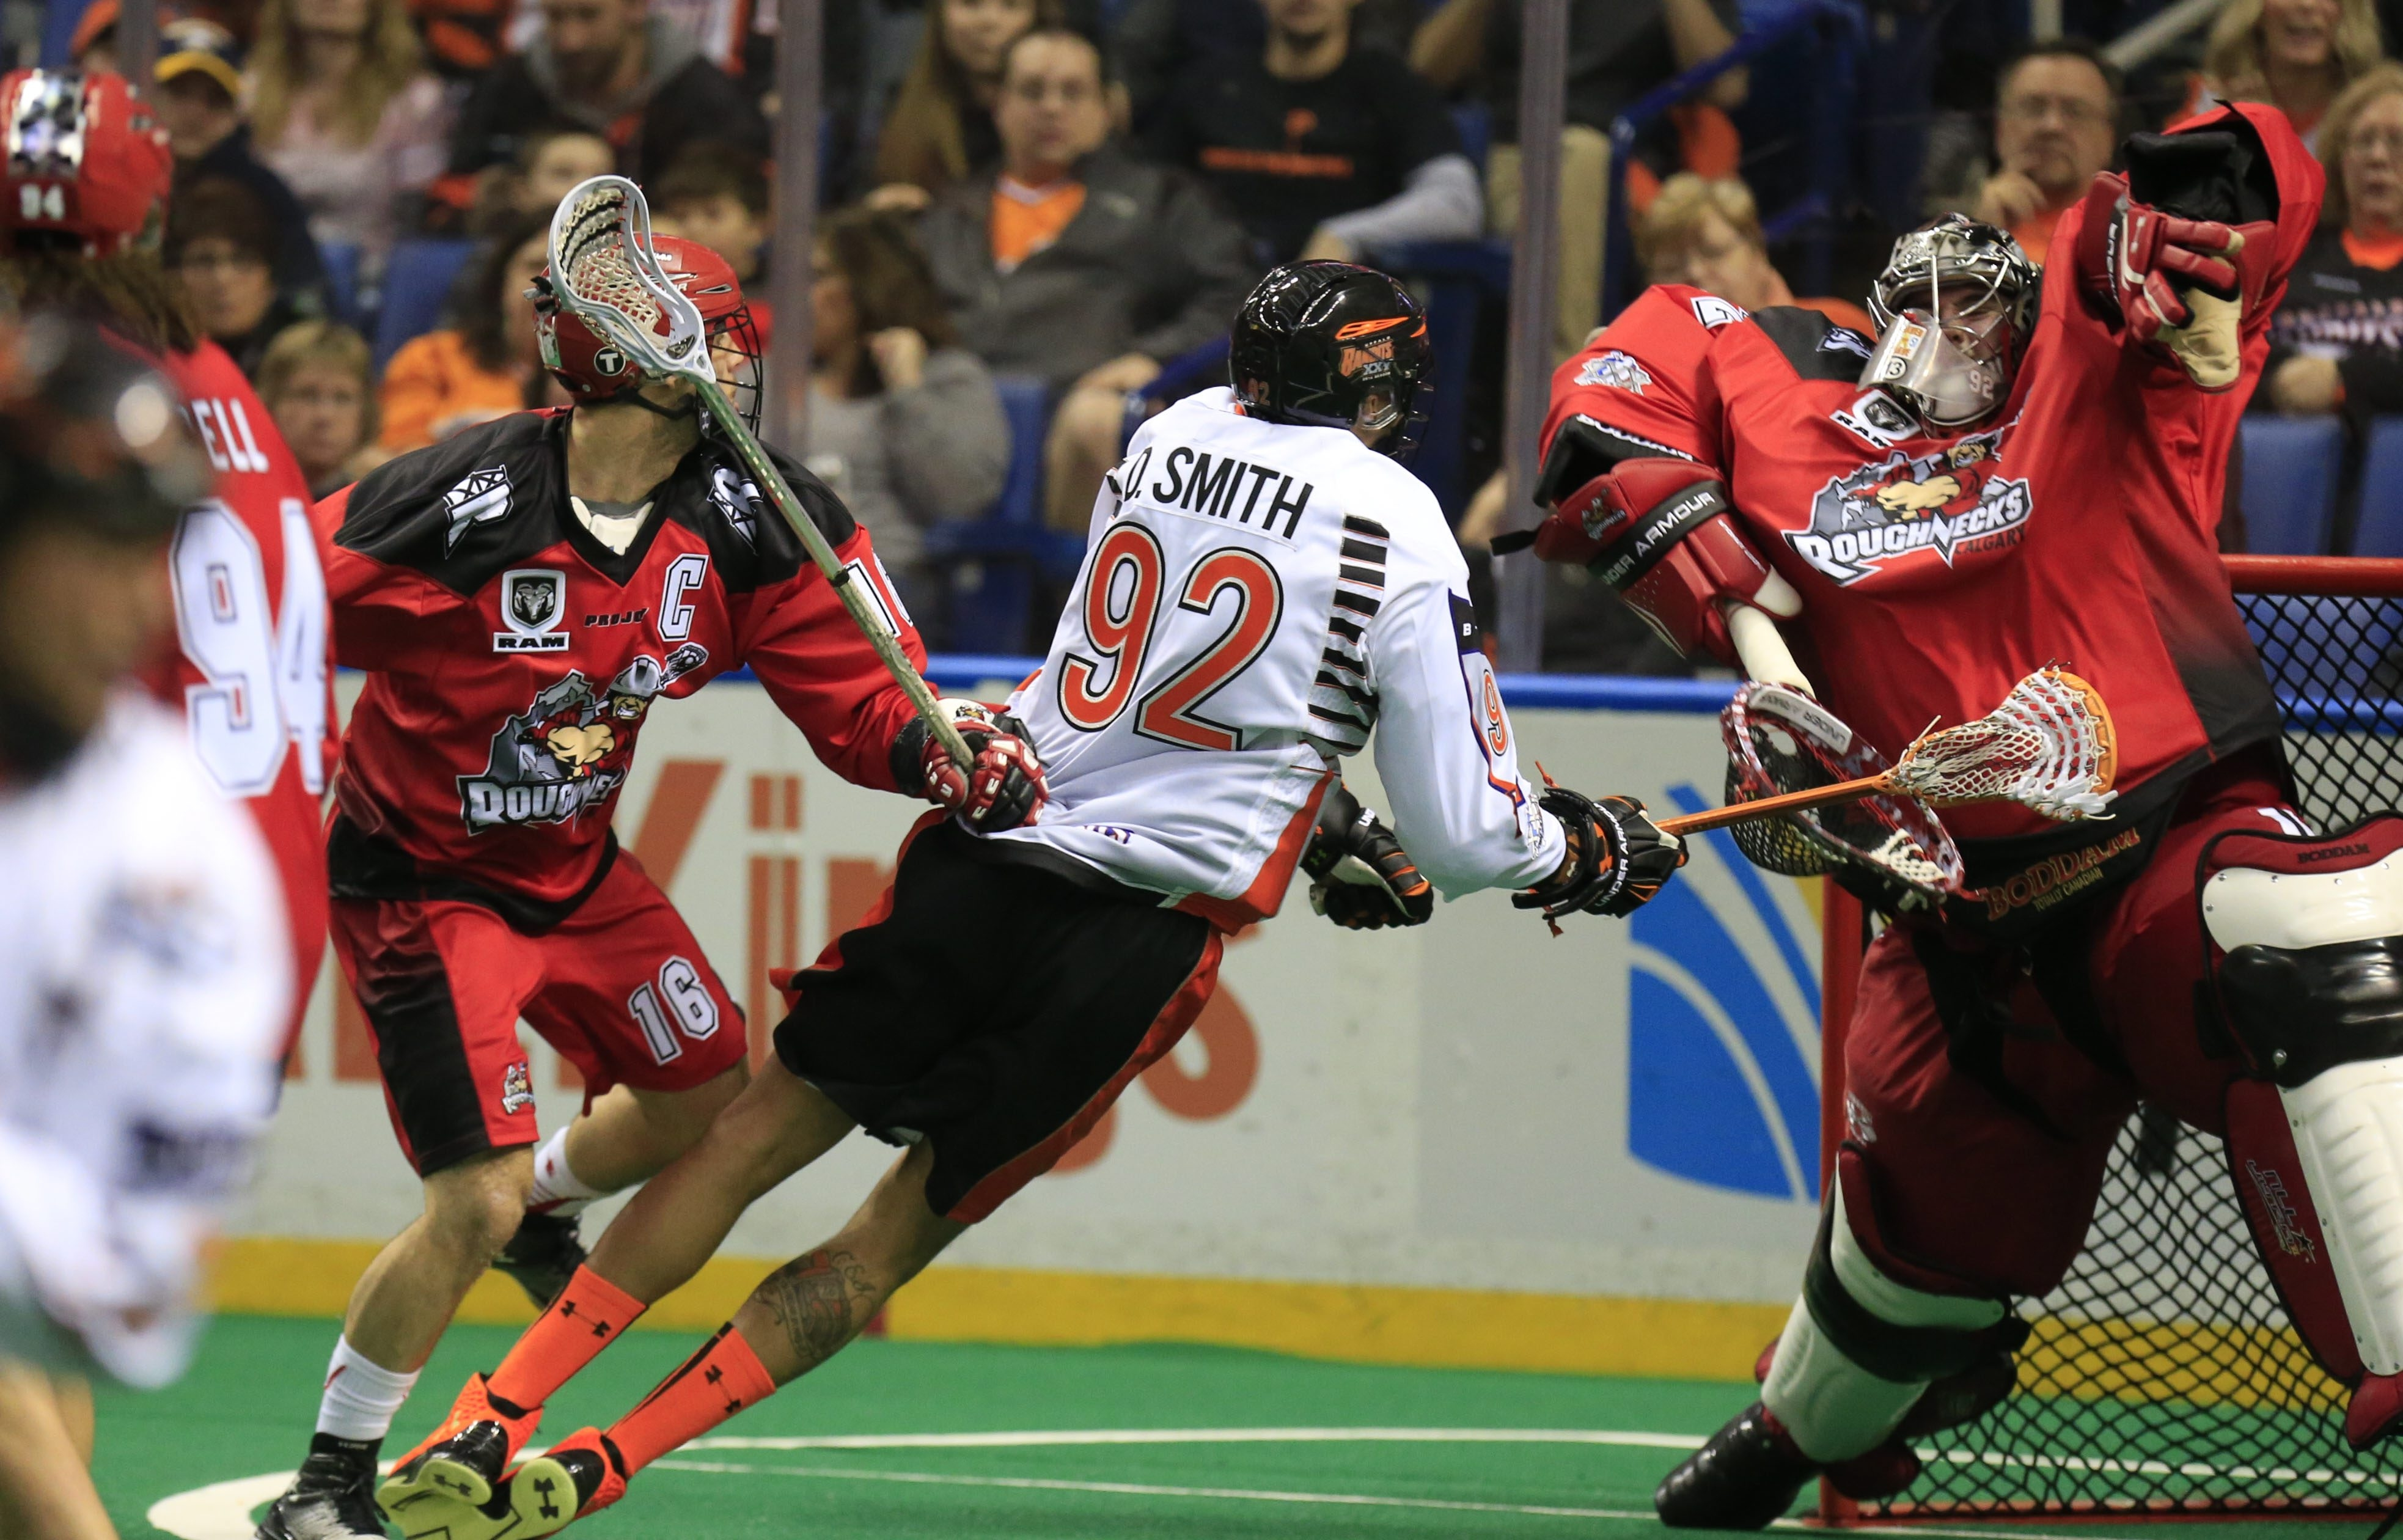 Dhane Smith (92) looks to be as much of an impact player for the Bandits during the playoffs as he's been during his record-setting regular season.  (Harry Scull Jr./Buffalo News)